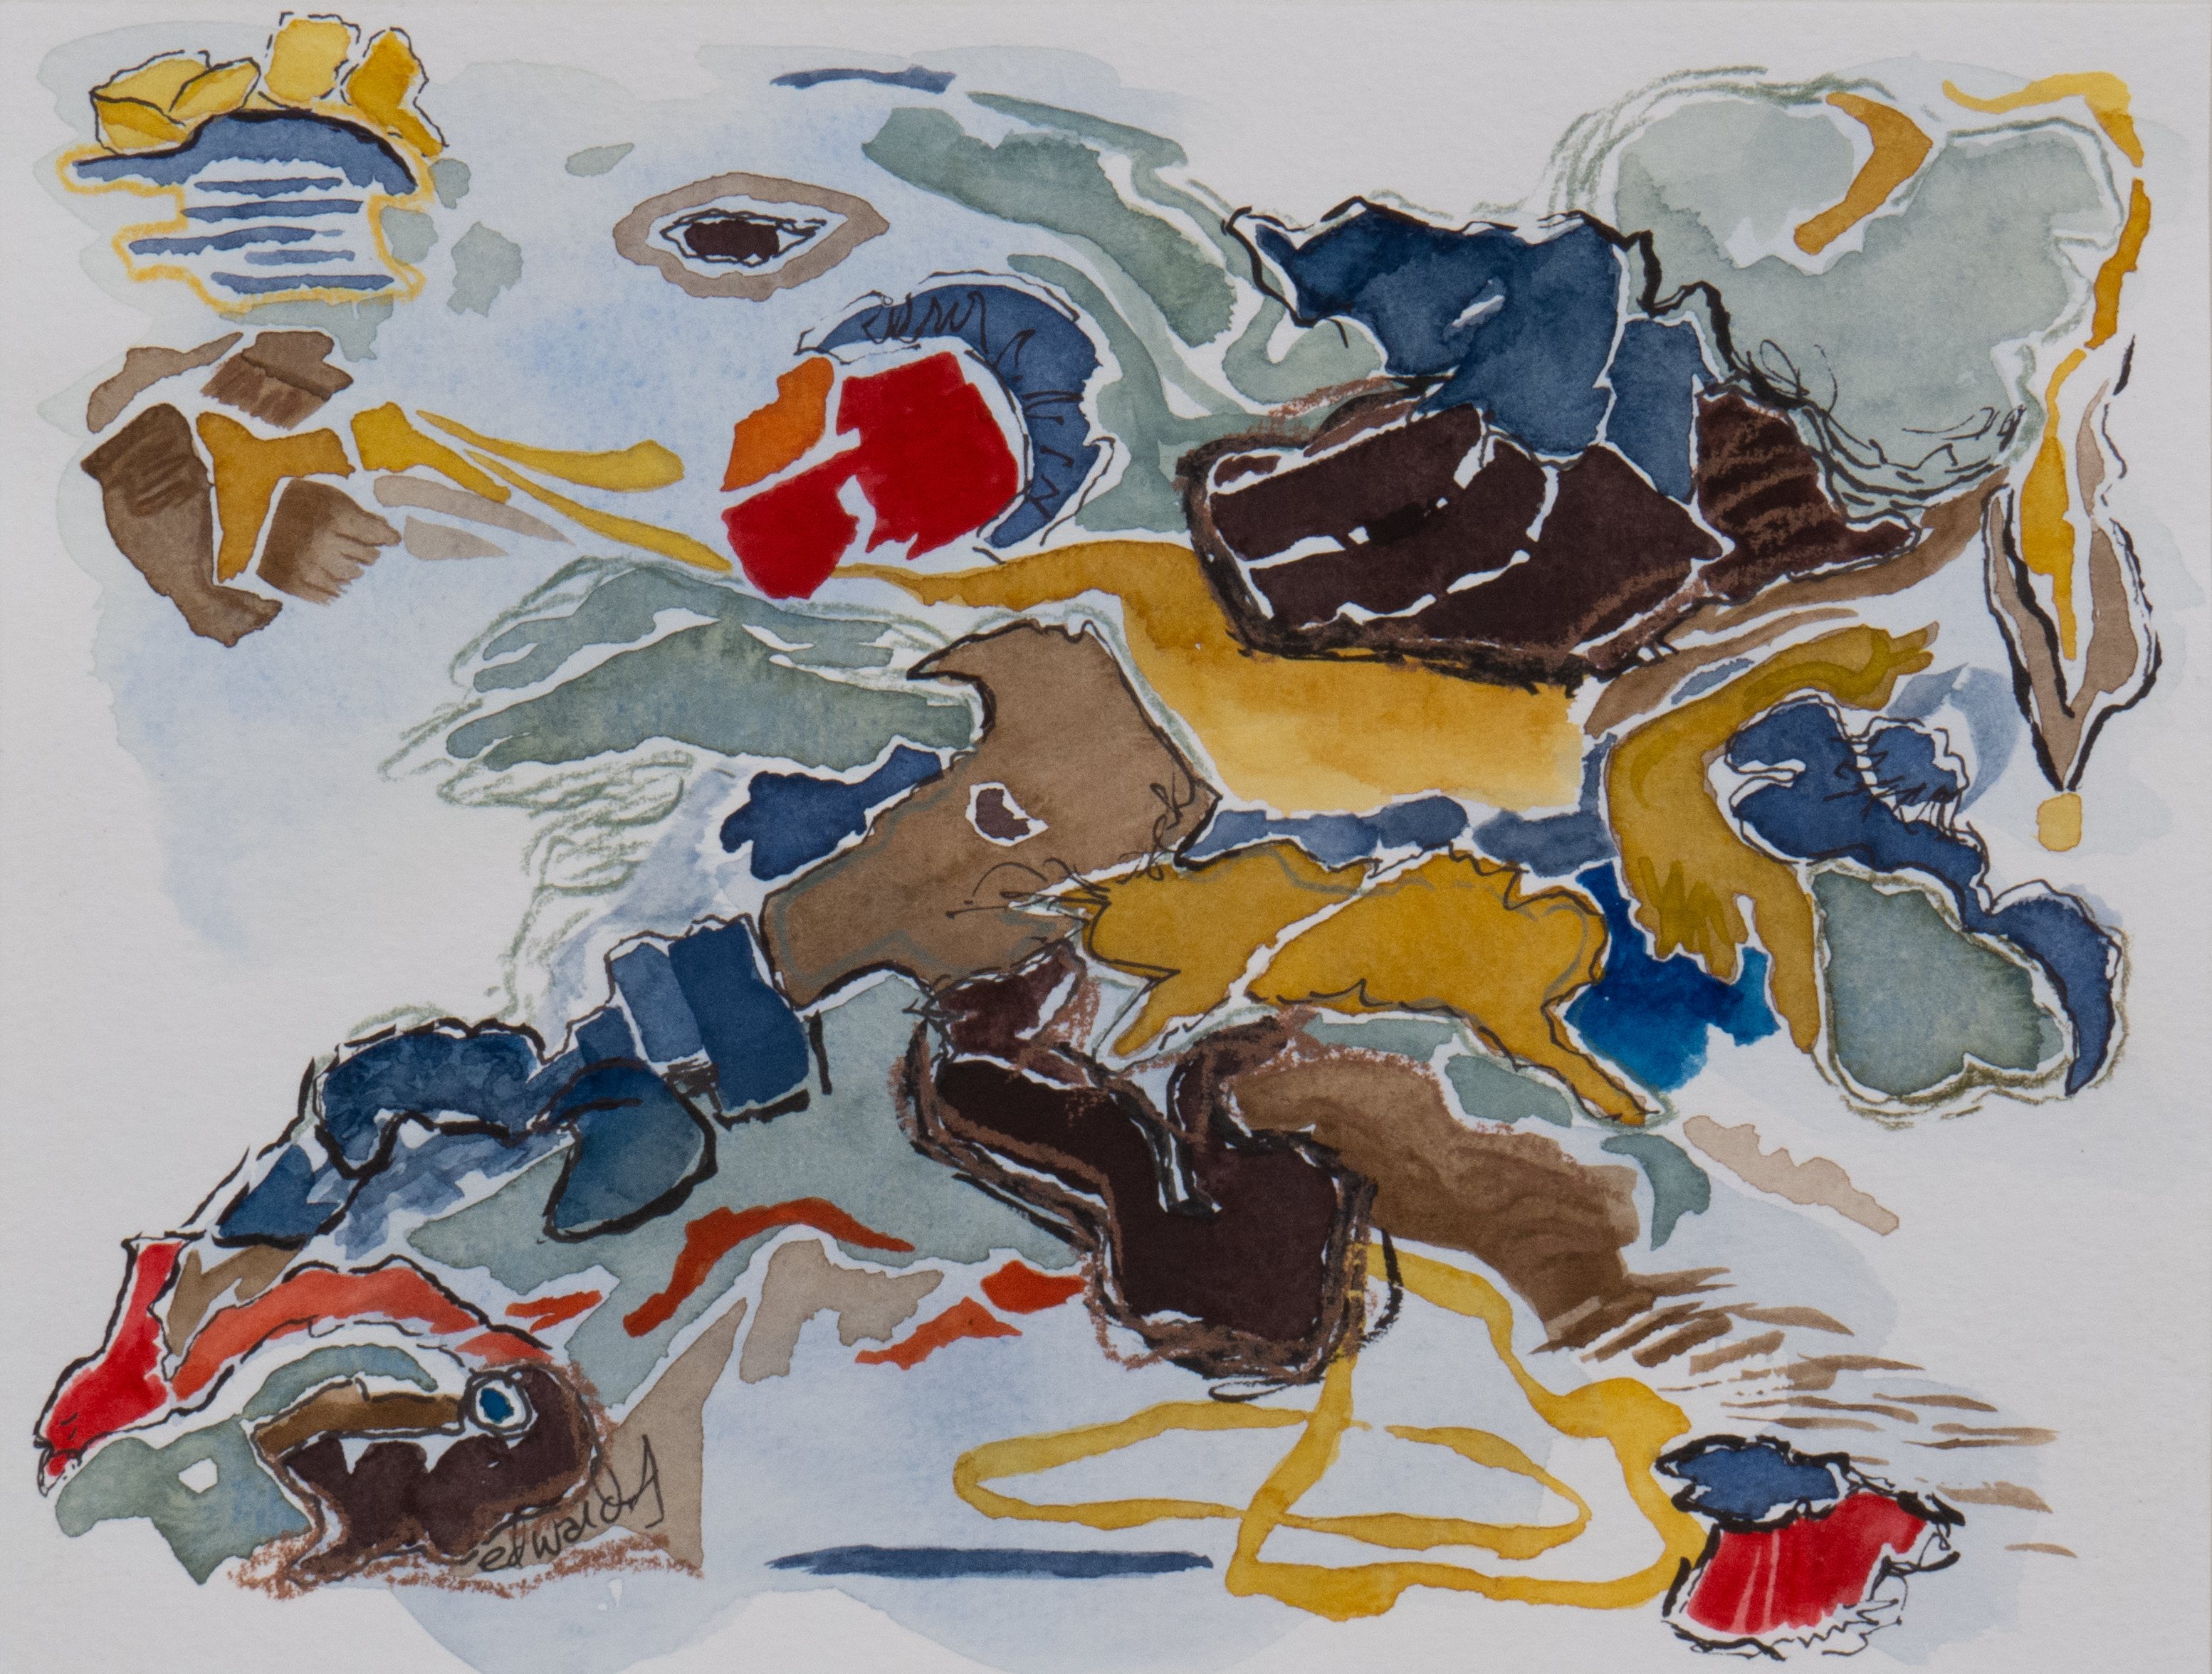 detritus (3) work on paper, gouache, contemporary art, abstracted landscape, Canadian artist barbra edwards, Pender Island, BC